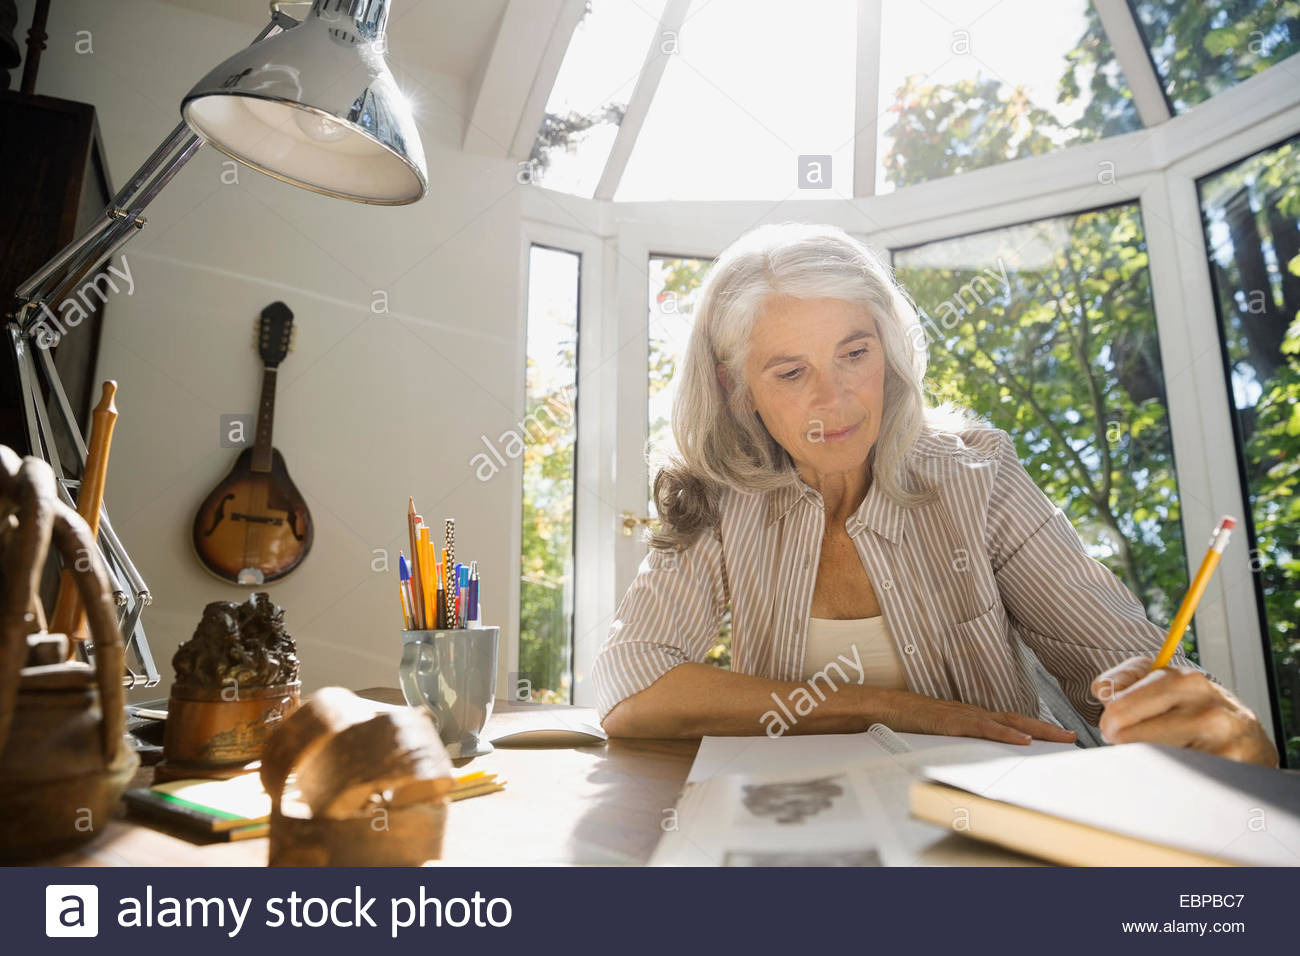 Senior woman writing in home office Photo Stock